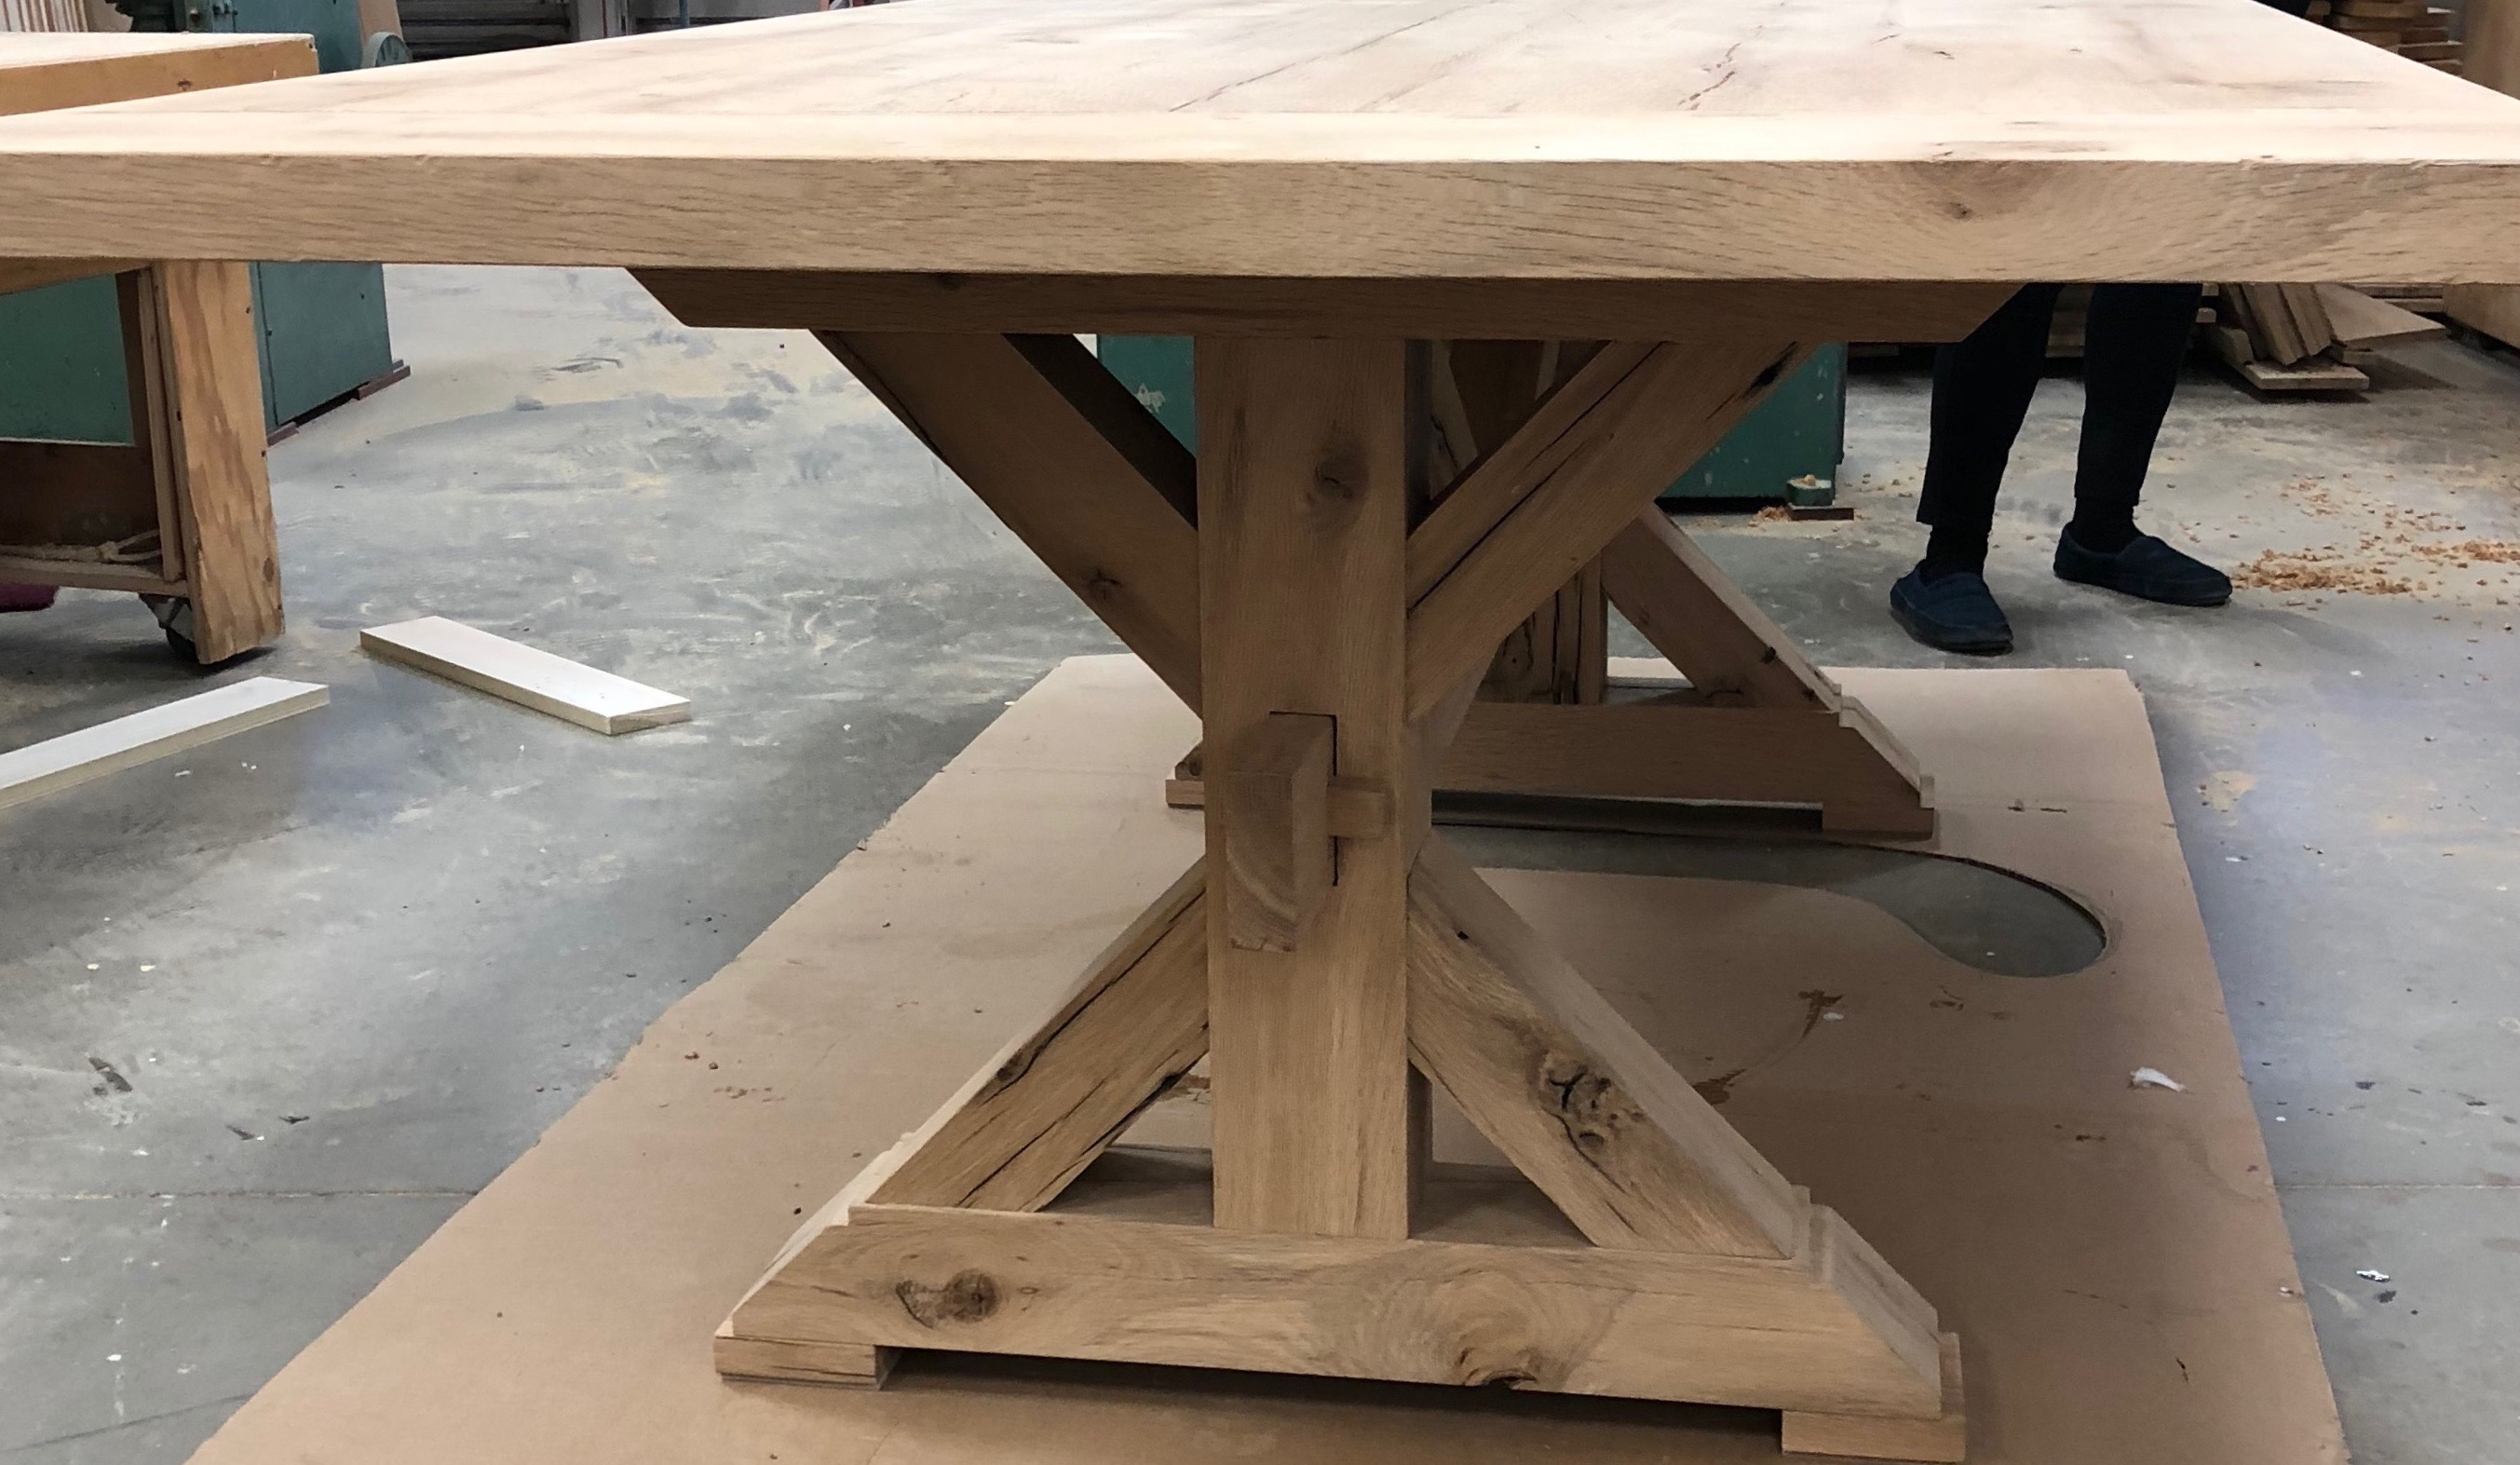 Trestle-style table made from antique white oak sourced from Rousseau Reclaimed Lumber & Flooring in South Portland, Maine